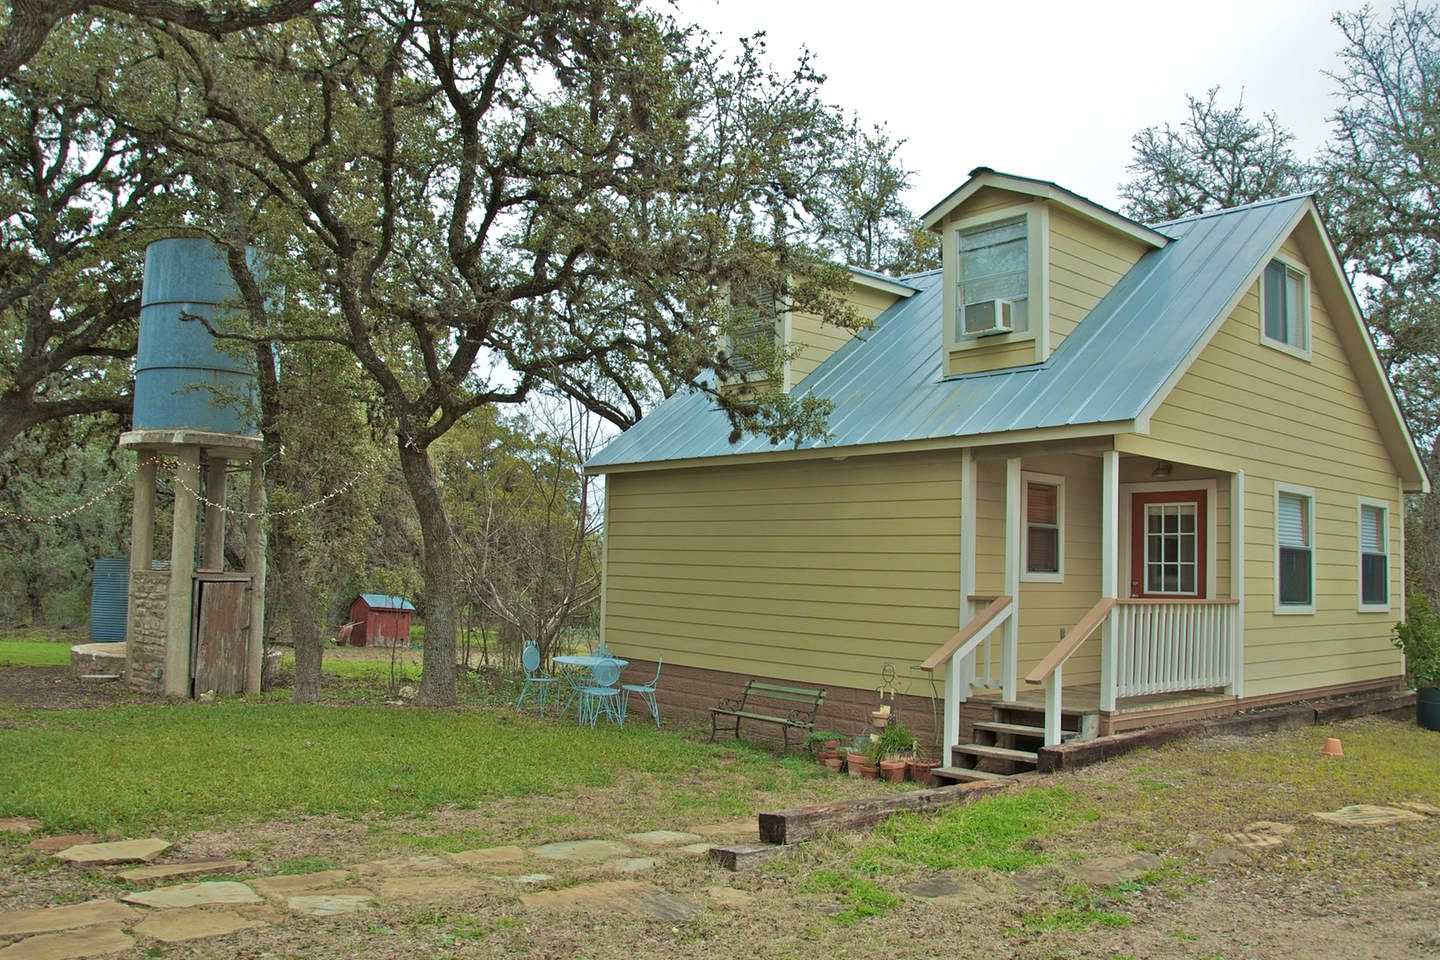 Vacation Rentals (Wimberley , Texas, United States)